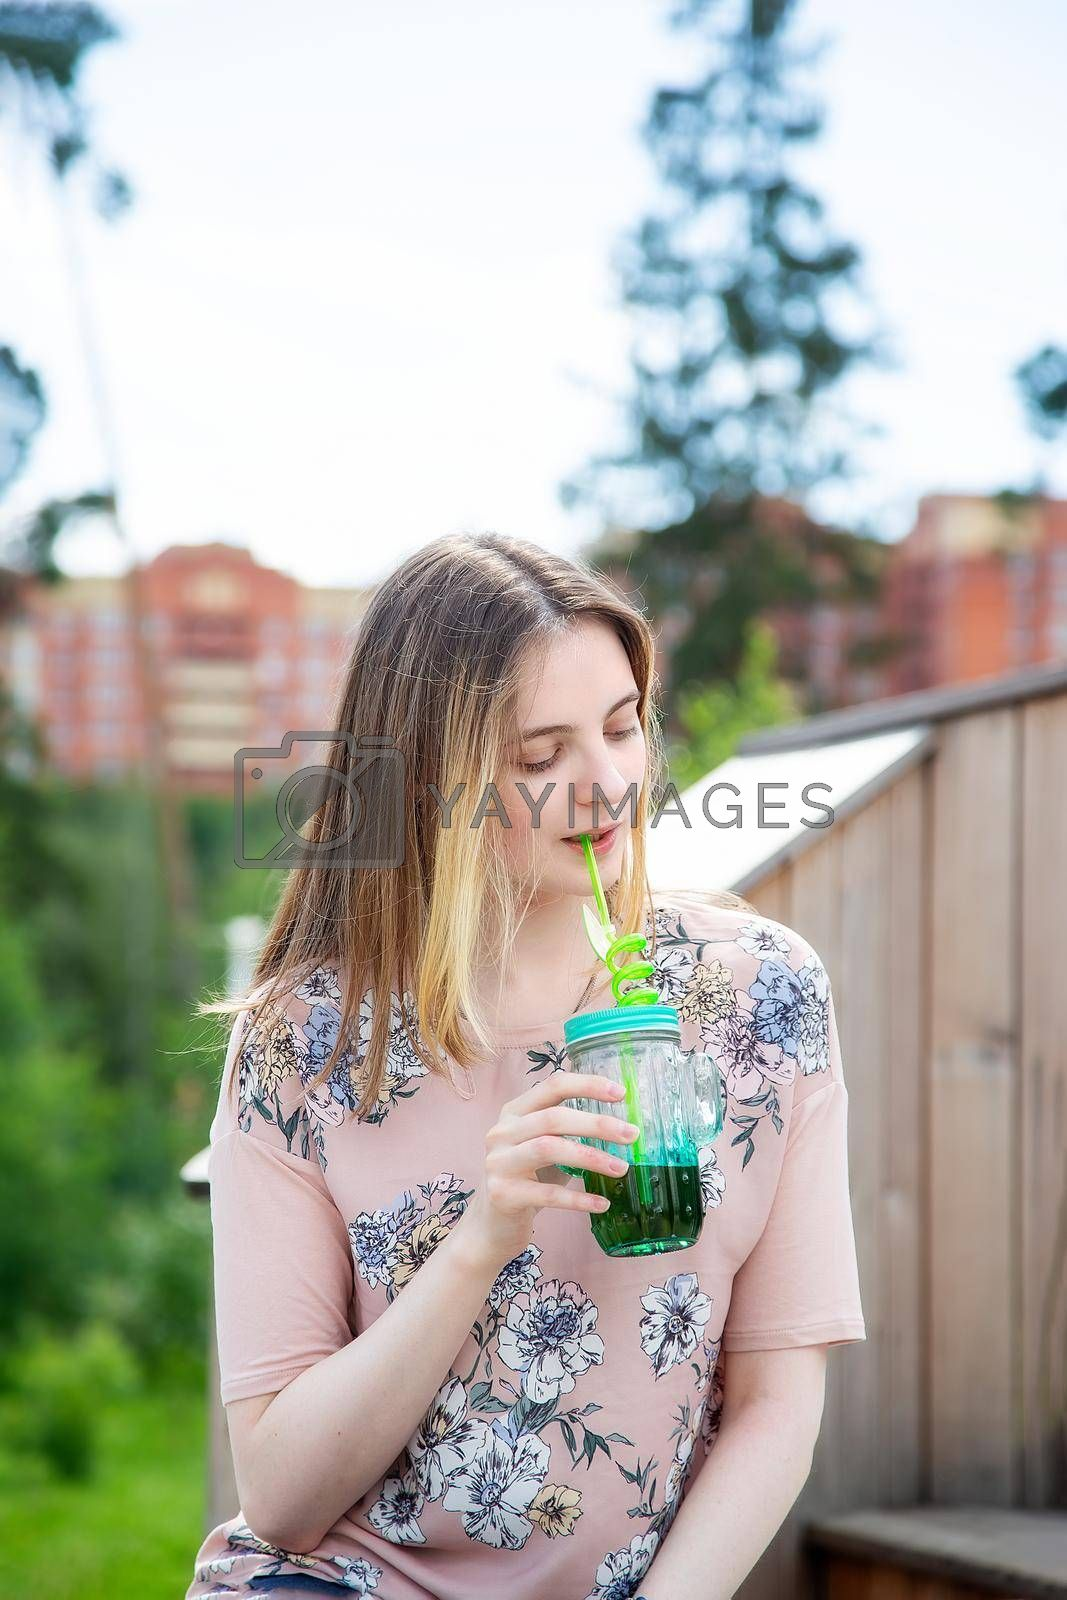 A young girl of 20 years old Caucasian appearance enjoys the sun and weather and drinks smoothies from a large glass while sitting on a wooden podium in the park on a summer day.